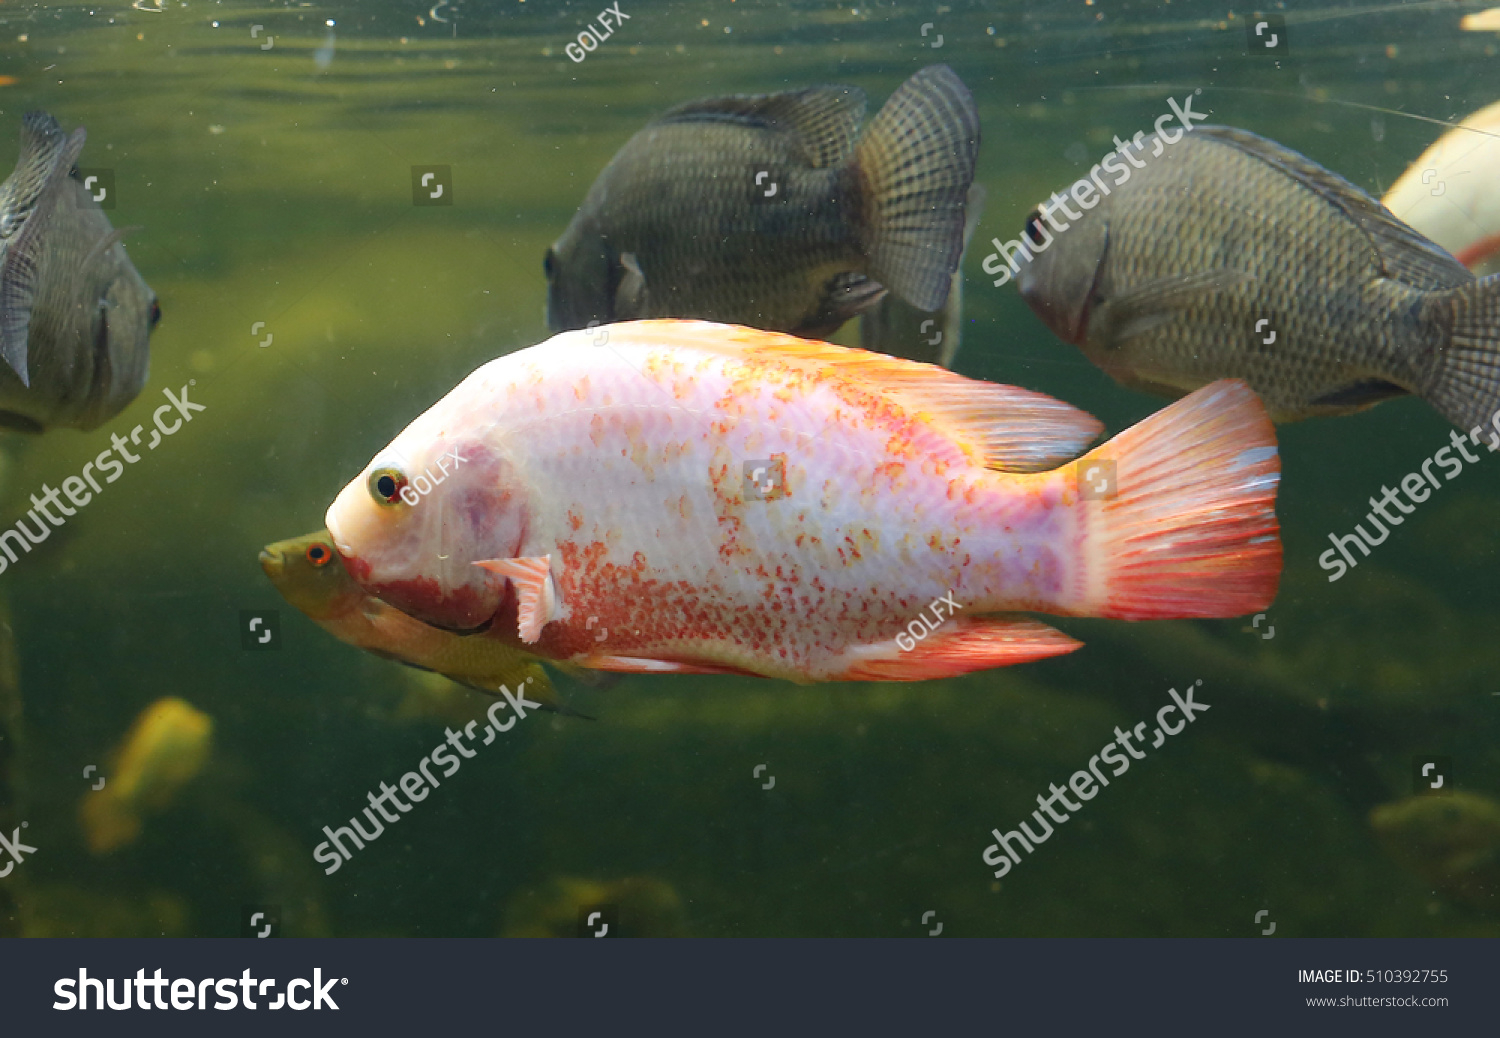 Red Tilapia Fish Swimming In A Pond Stock Photo 510392755